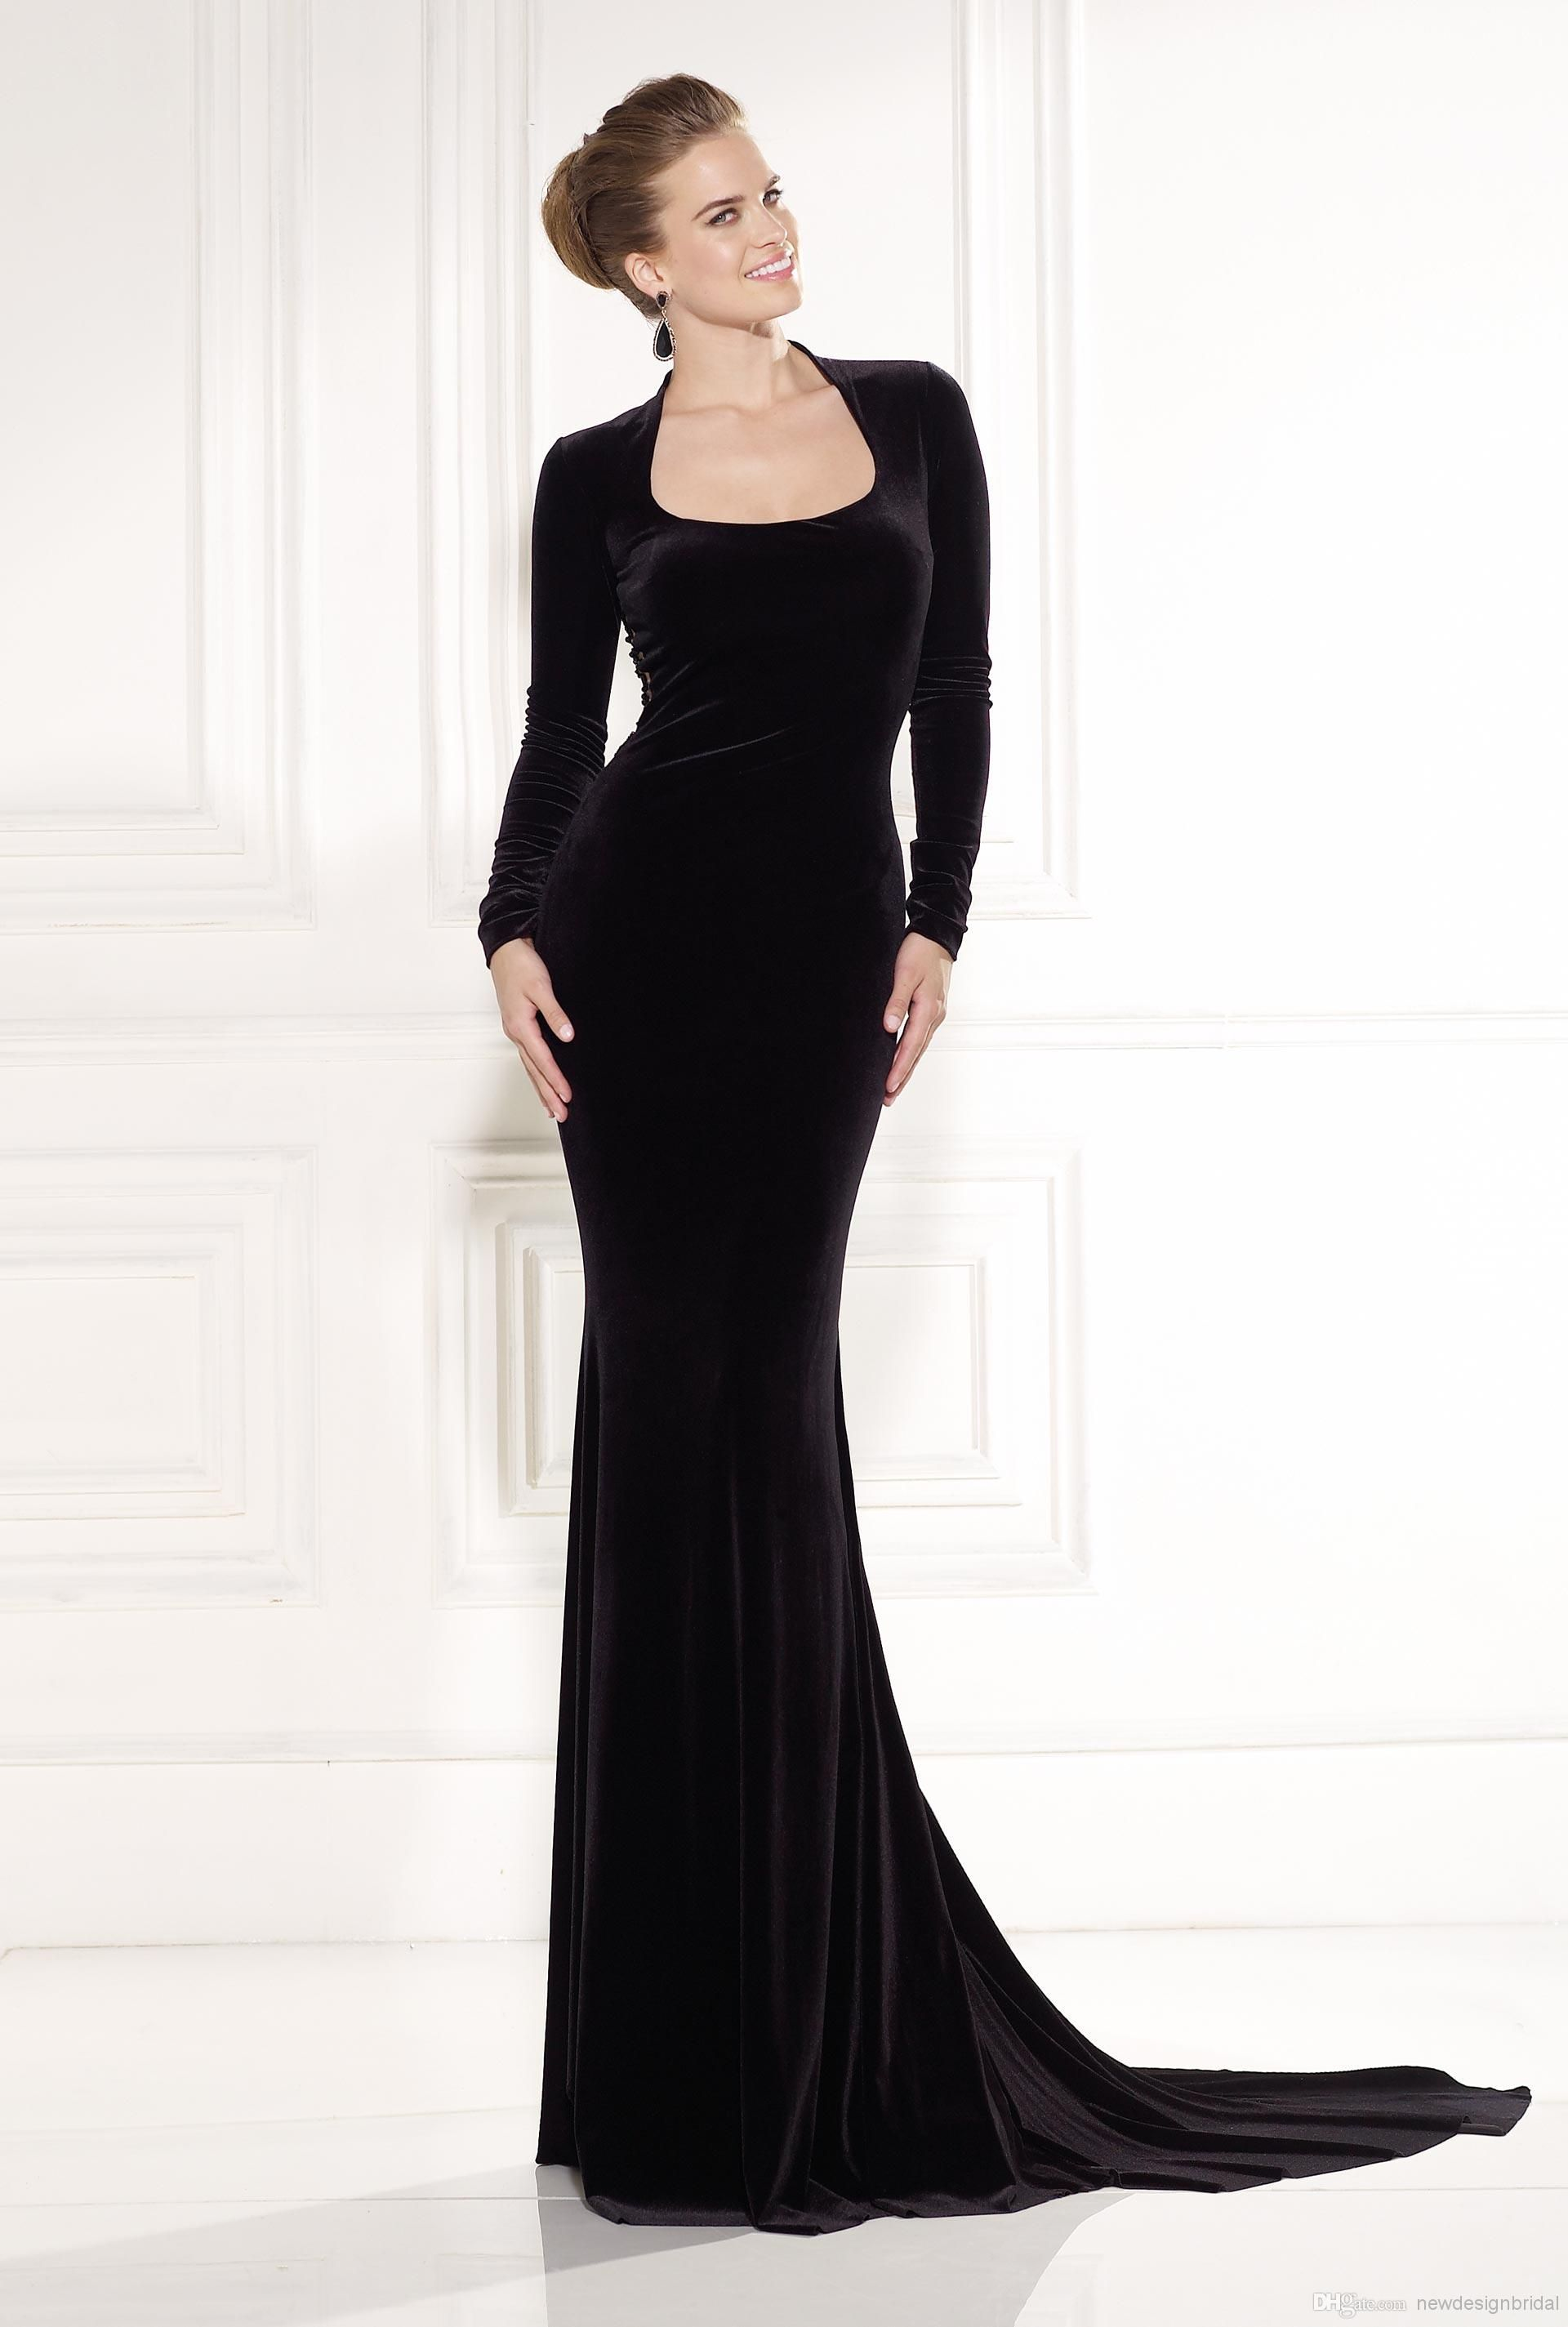 New arrival black tarik ediz prom dress long sleeves velvet